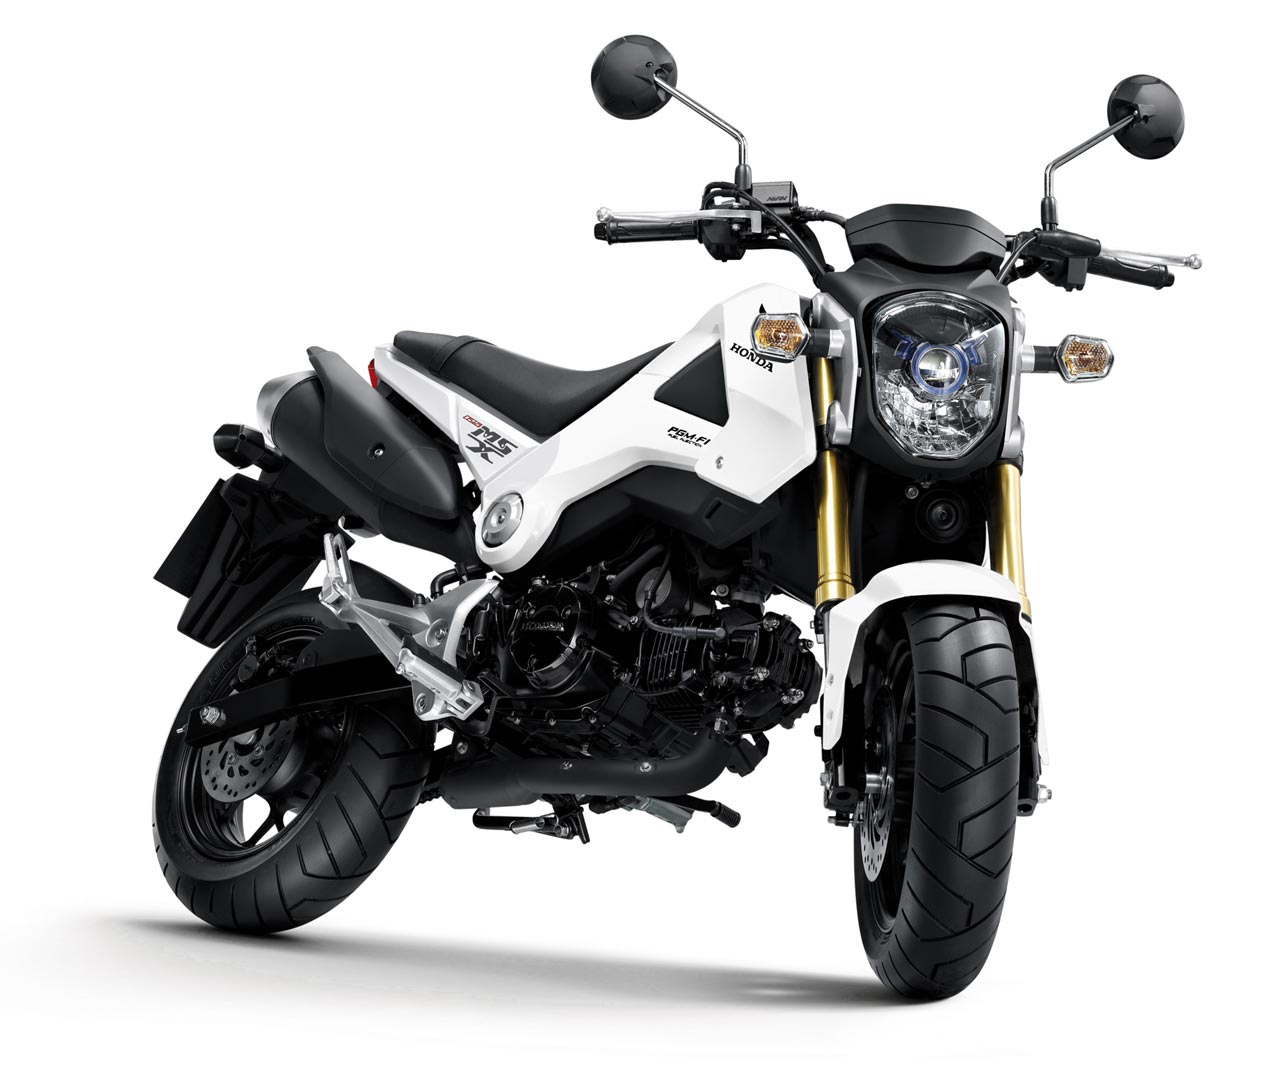 Honda MSX125 and Forza recalled for fuel pump issue